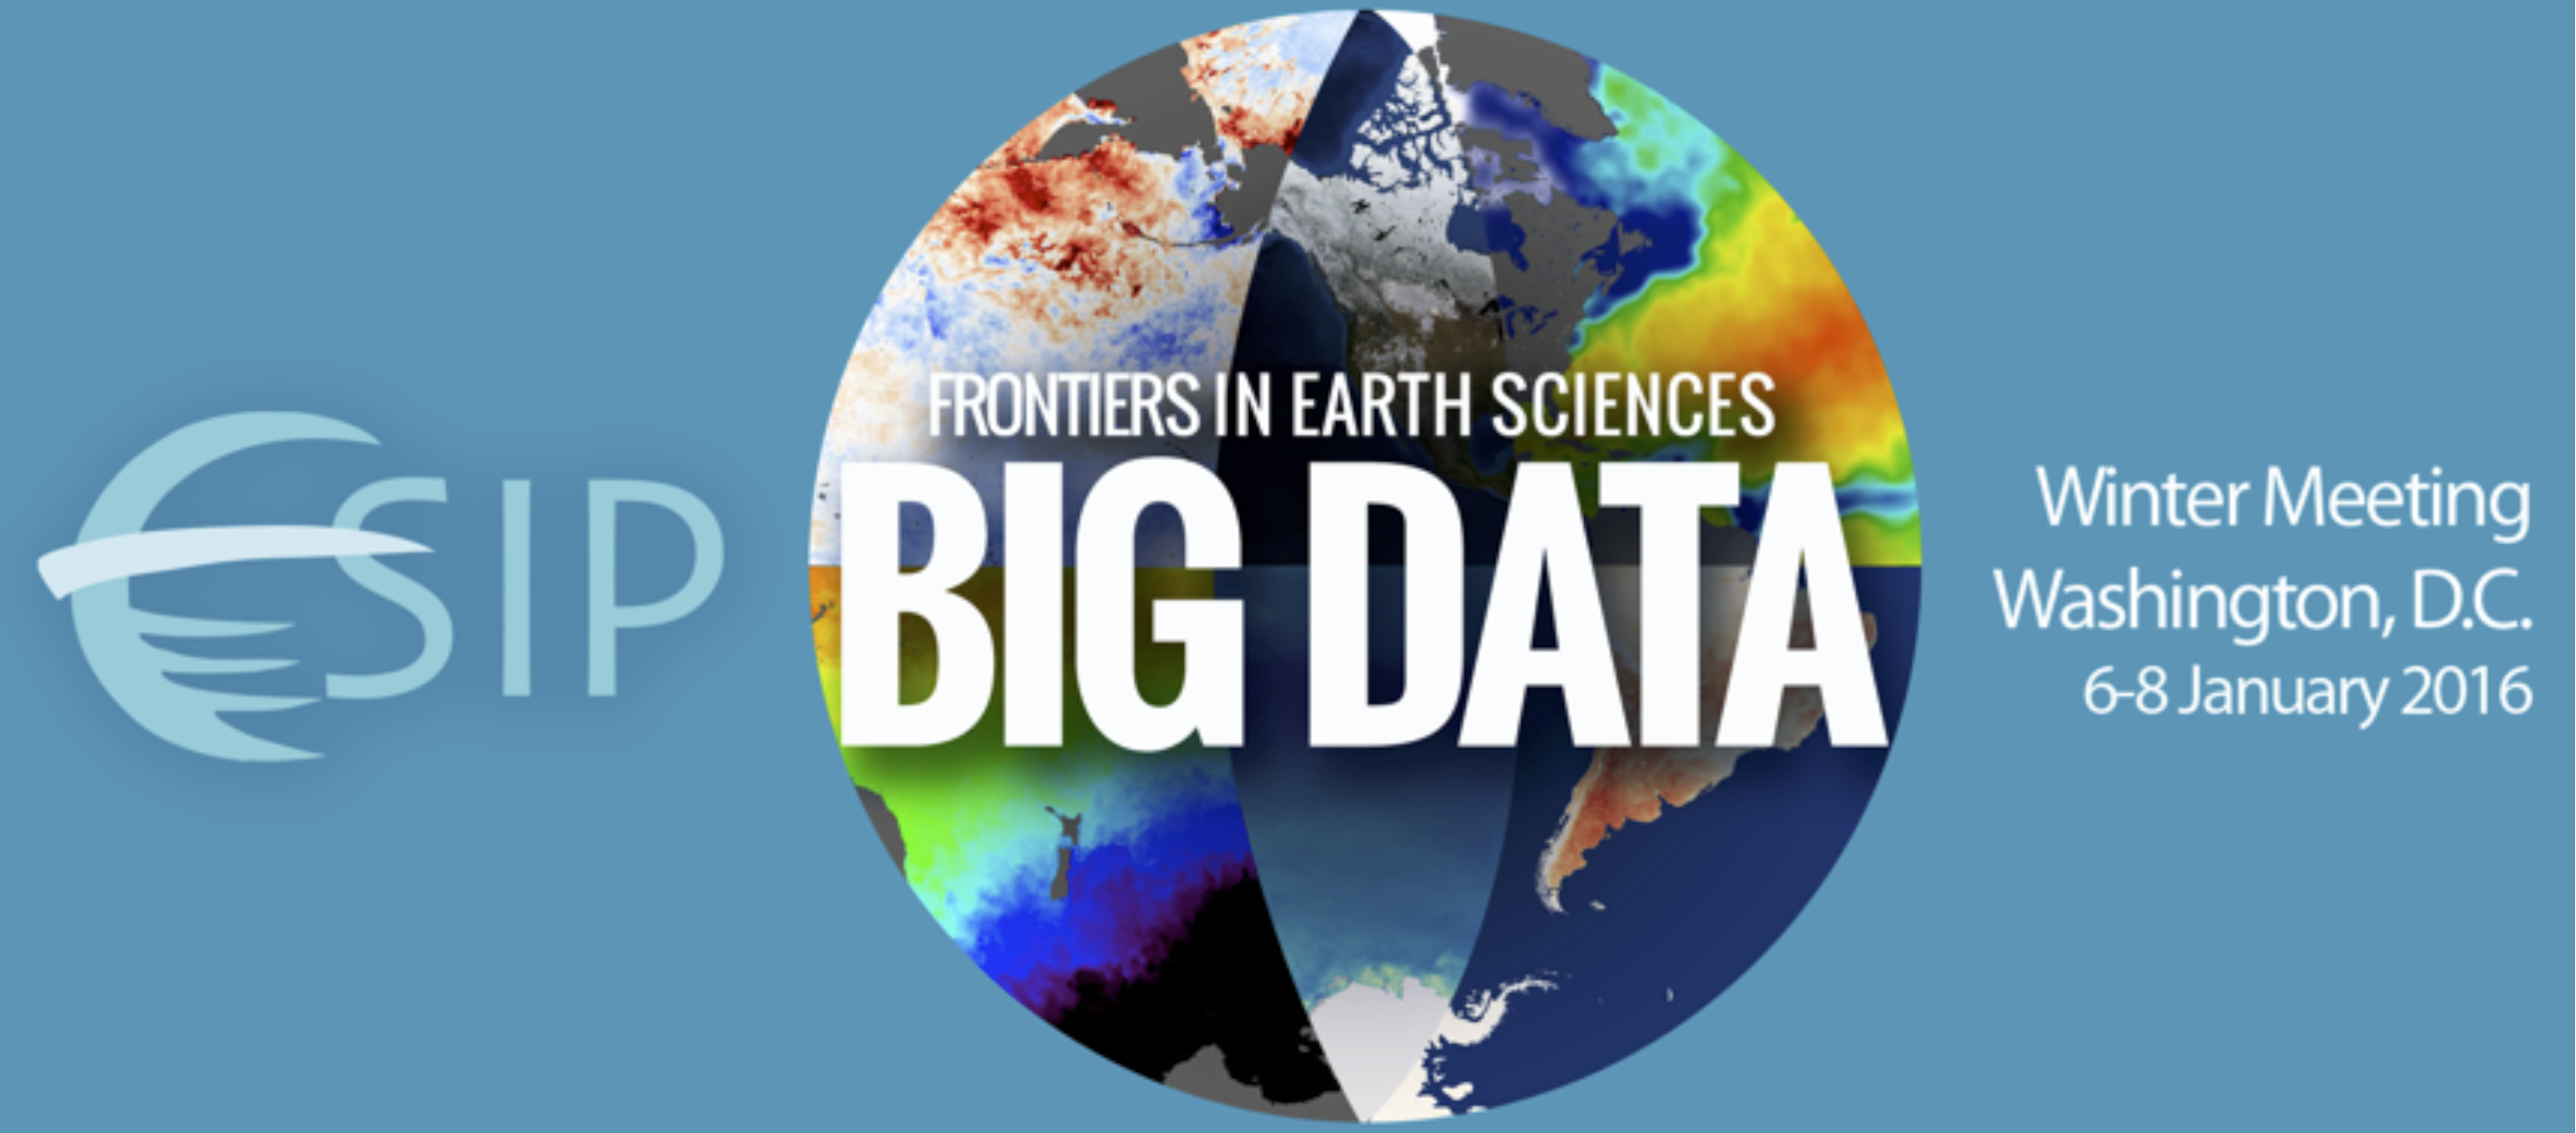 Frontiers in Earth Science & Big Data